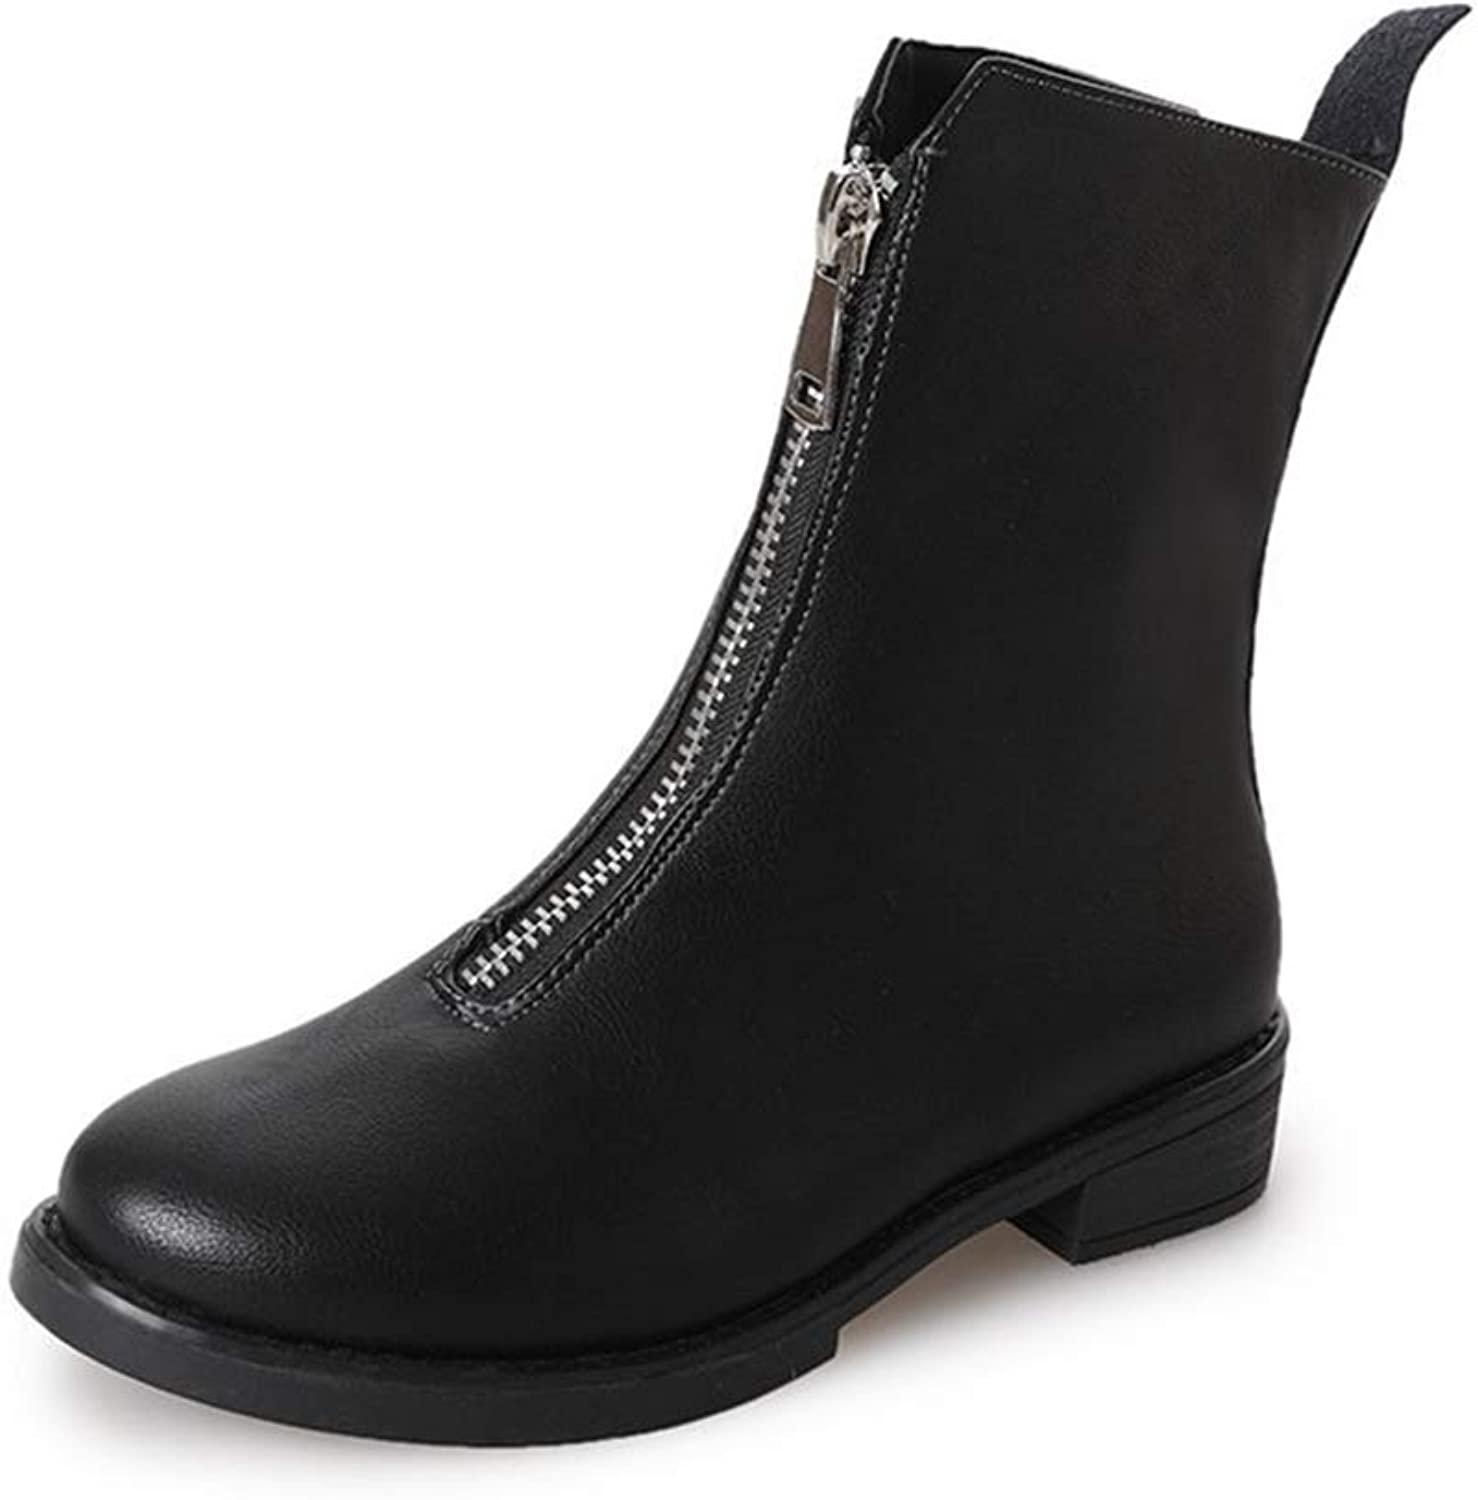 York Zhu Women Fashion Causual Boots,Front Zipper Non-Slip Twisted Rider Ankle Boots